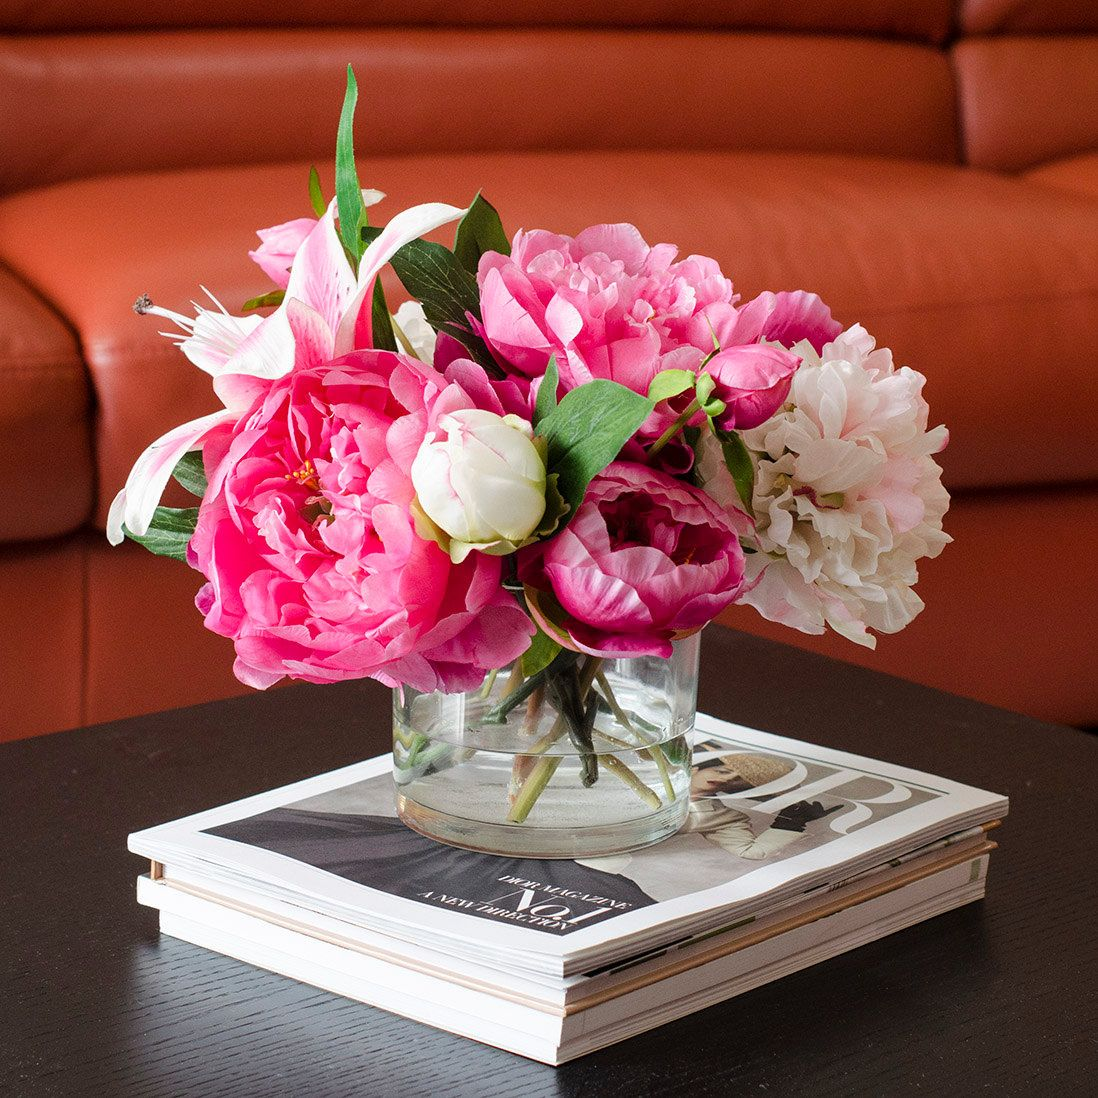 Exceptional Home Decor Fake Flowers Part - 9: Silk Peonies Arrangement With Casablanca Lily Fuchsia Pink Peonies Silk  Flowers Artificial Faux In Glass Vase For Home Decor